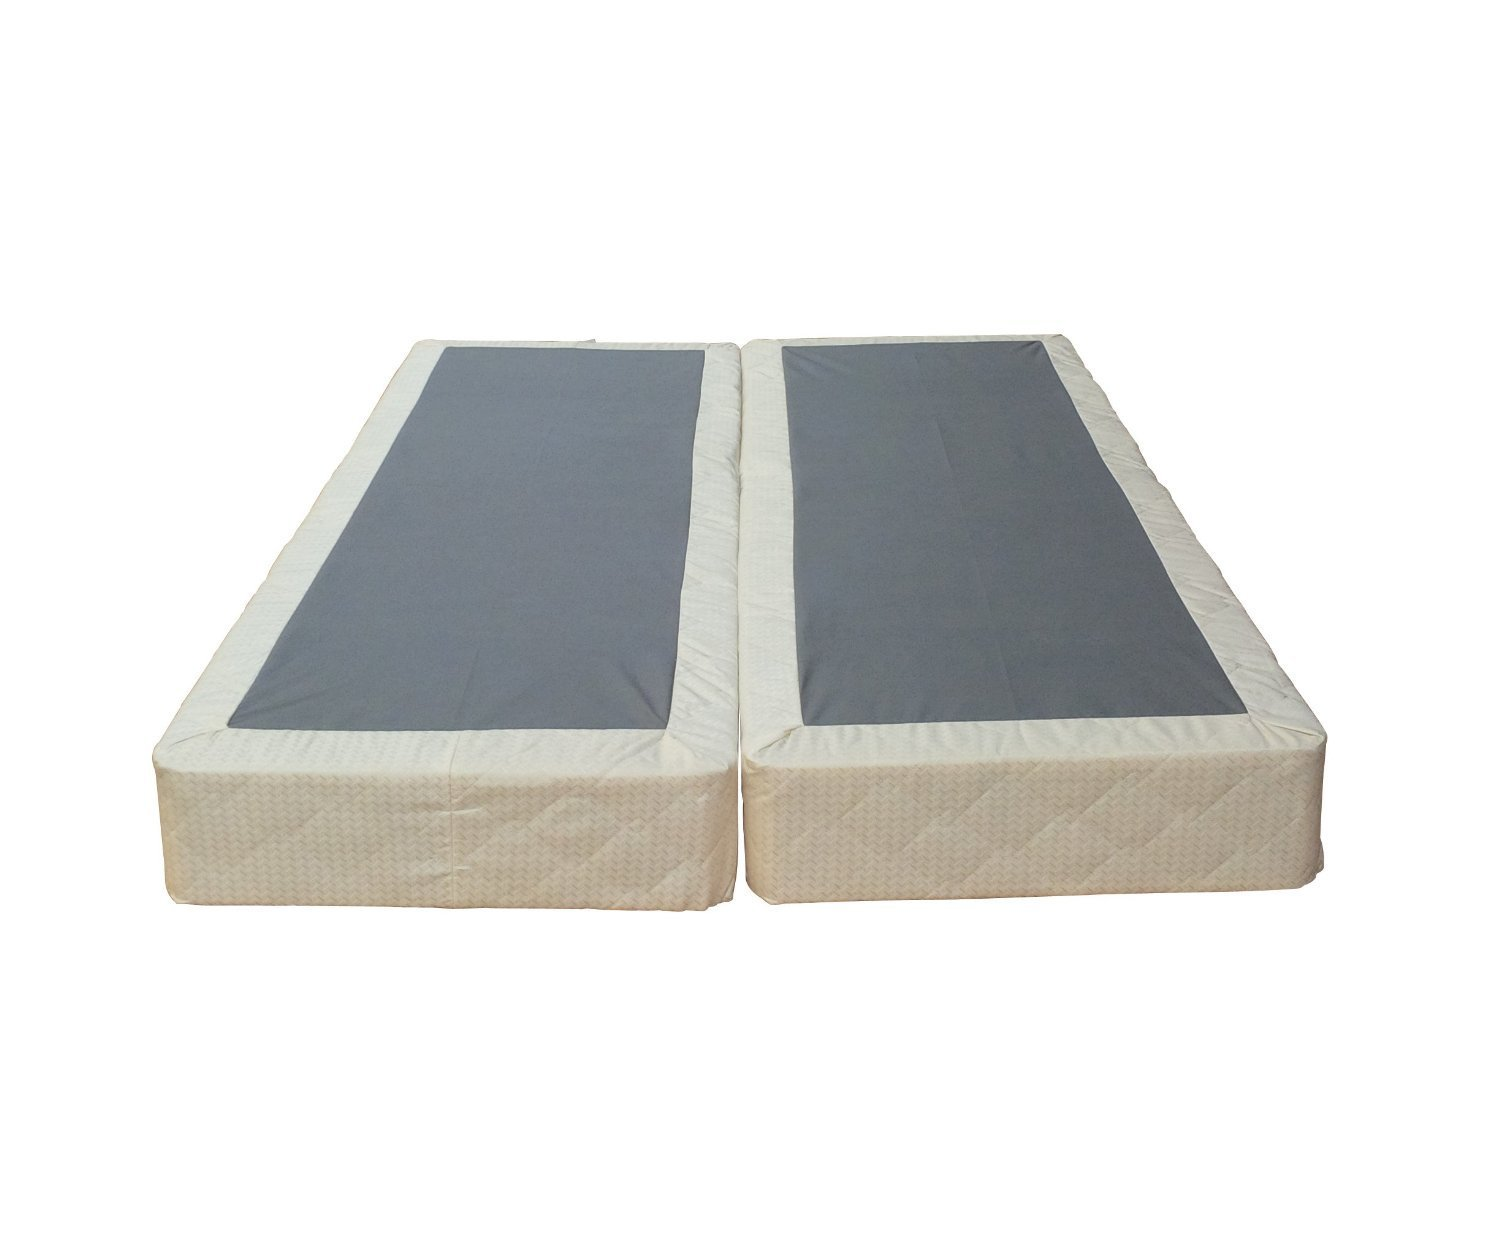 Foundation the imperial furniture for Ikea full box spring